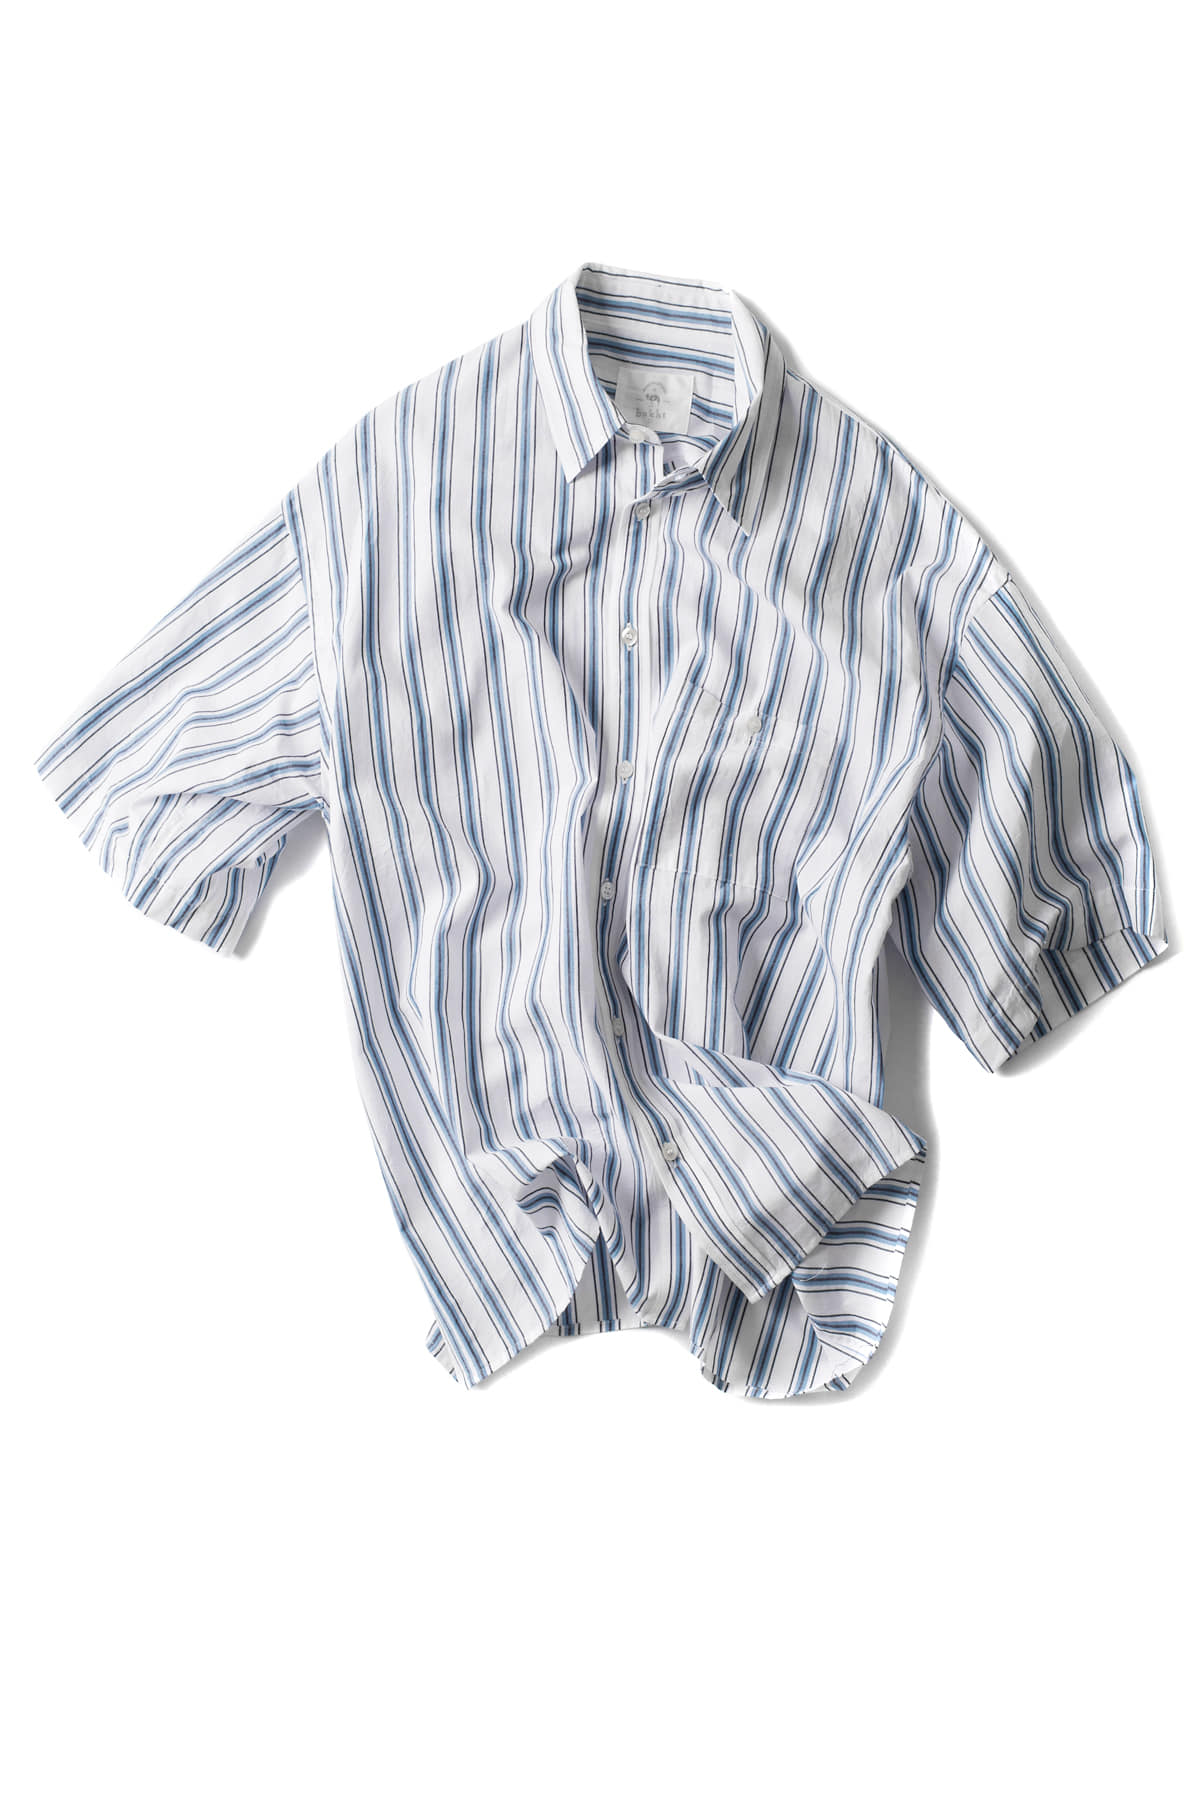 bukht : Basic Short Sleeve Shirts (Blue Stripe)